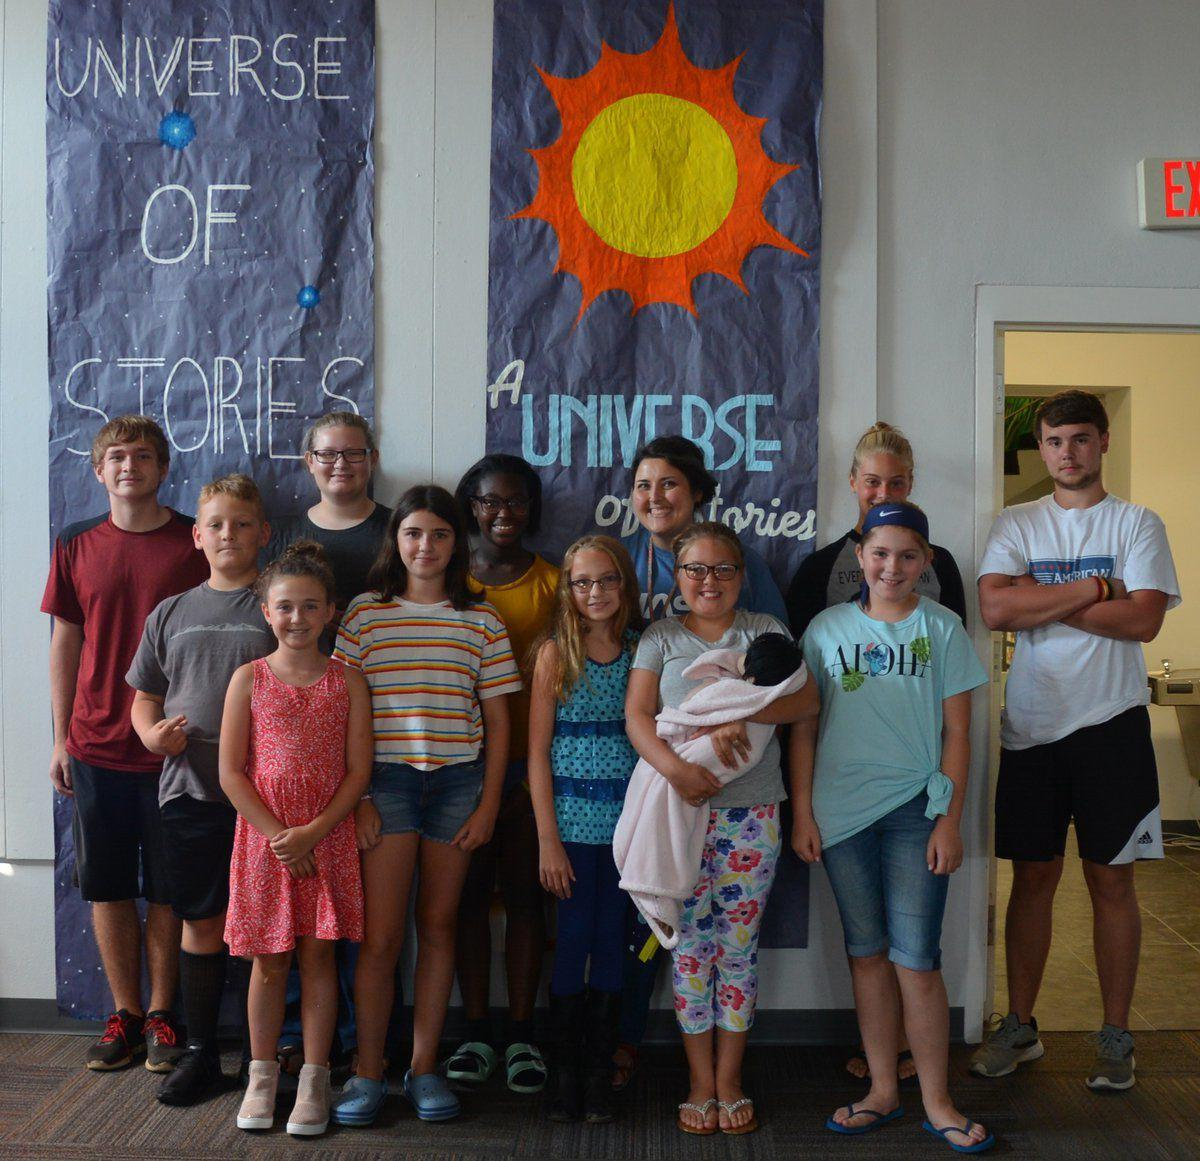 Library holds end-of-summer celebration